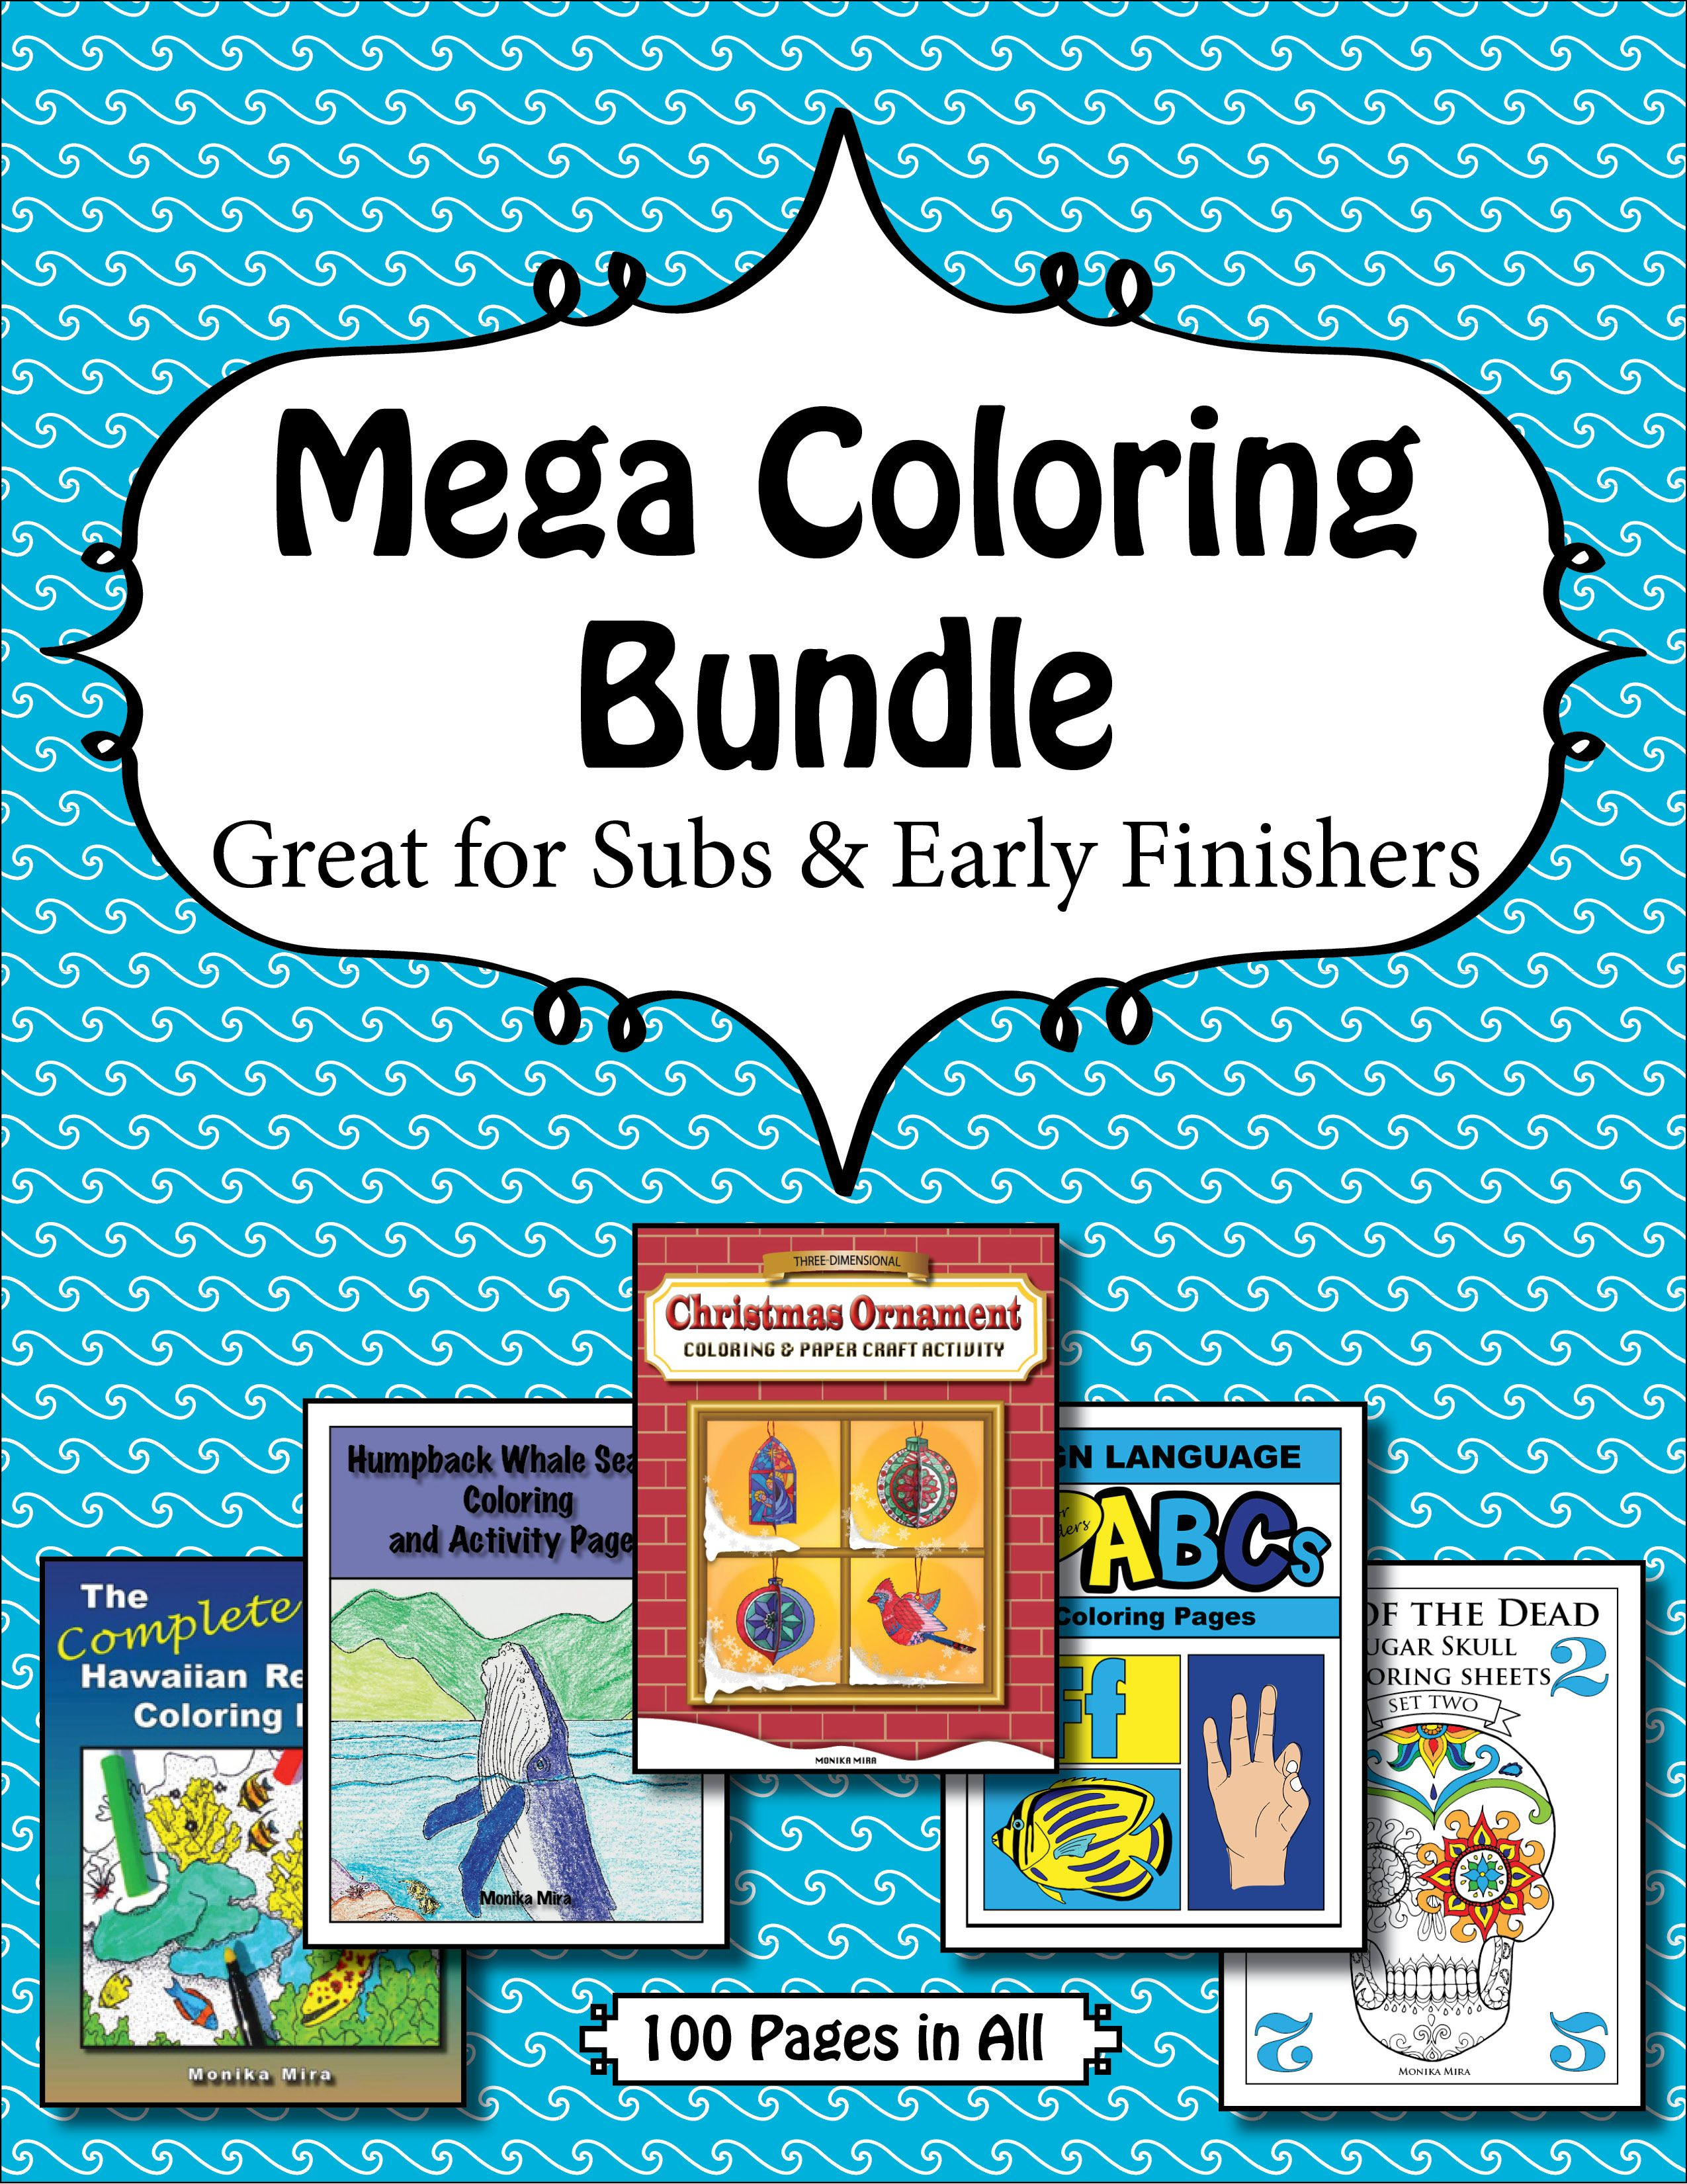 Mega Coloring Bundle Includes Sugar Skulls, Humpback Whale Behaviors, 3d  Paper Christmas Ornament Craft